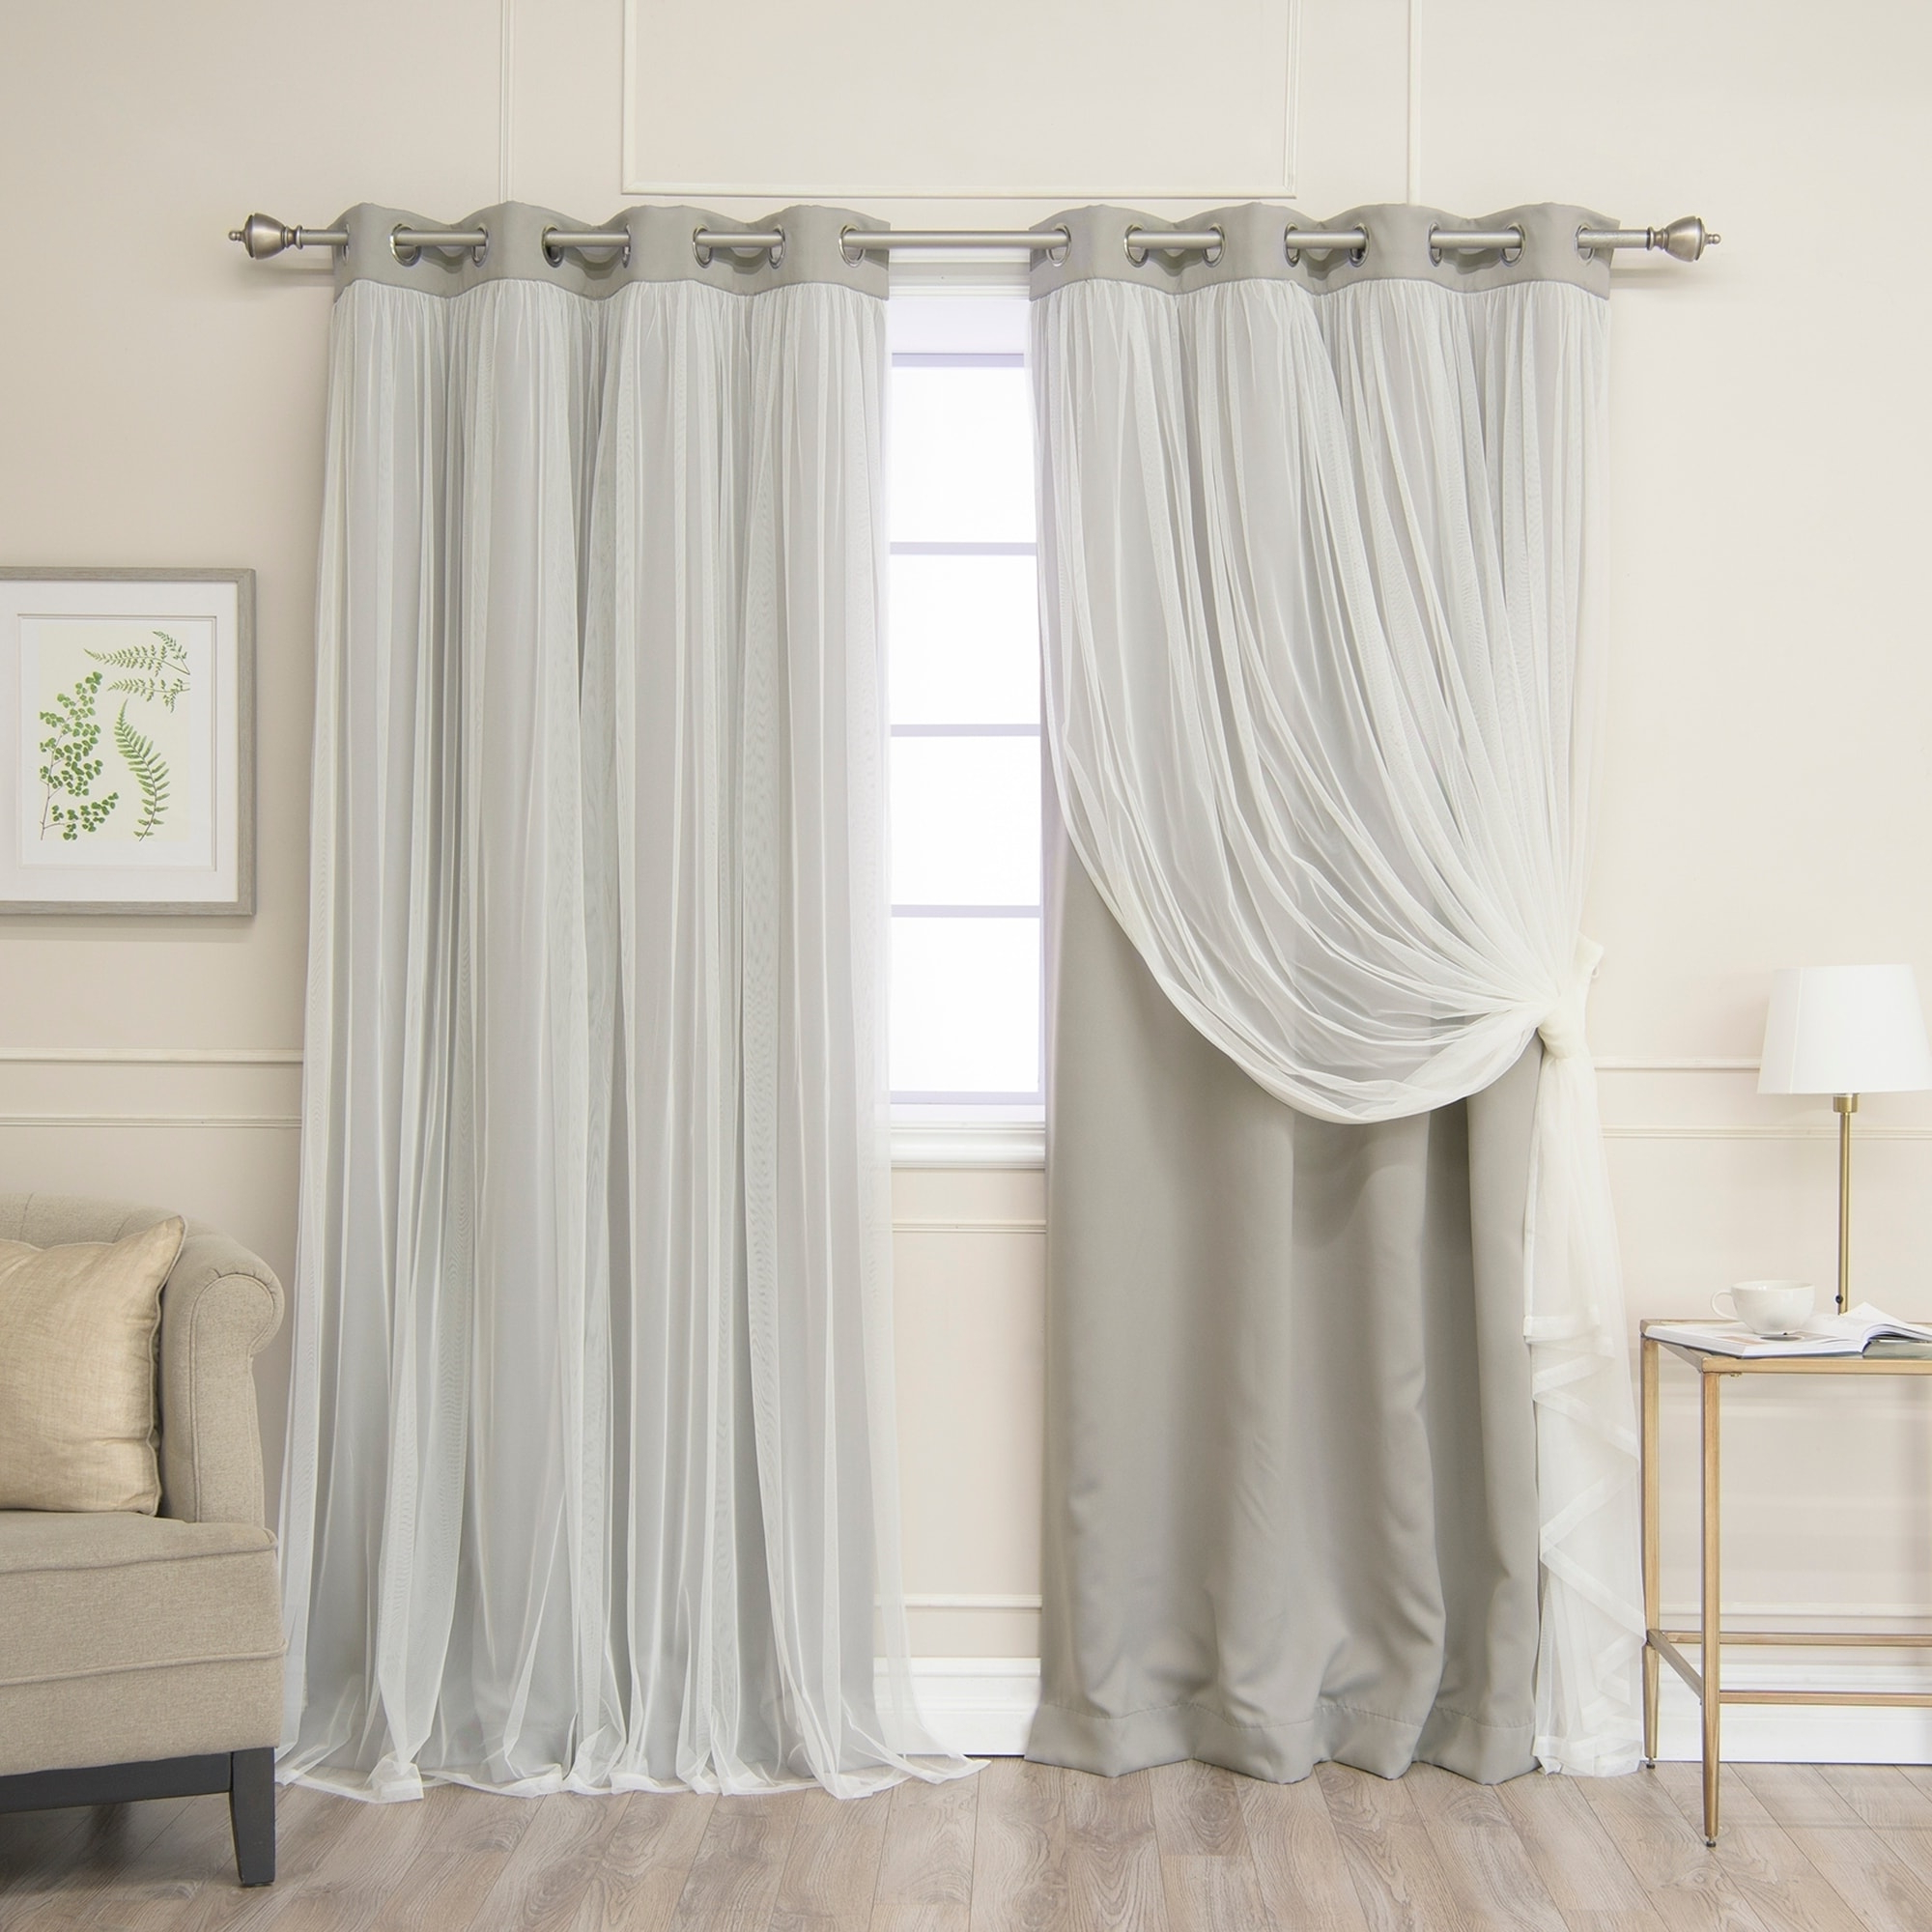 2020 Aurora Home Gathered Tulle Overlay Blackout Curtain Panel Pair Inside Star Punch Tulle Overlay Blackout Curtain Panel Pairs (View 20 of 20)